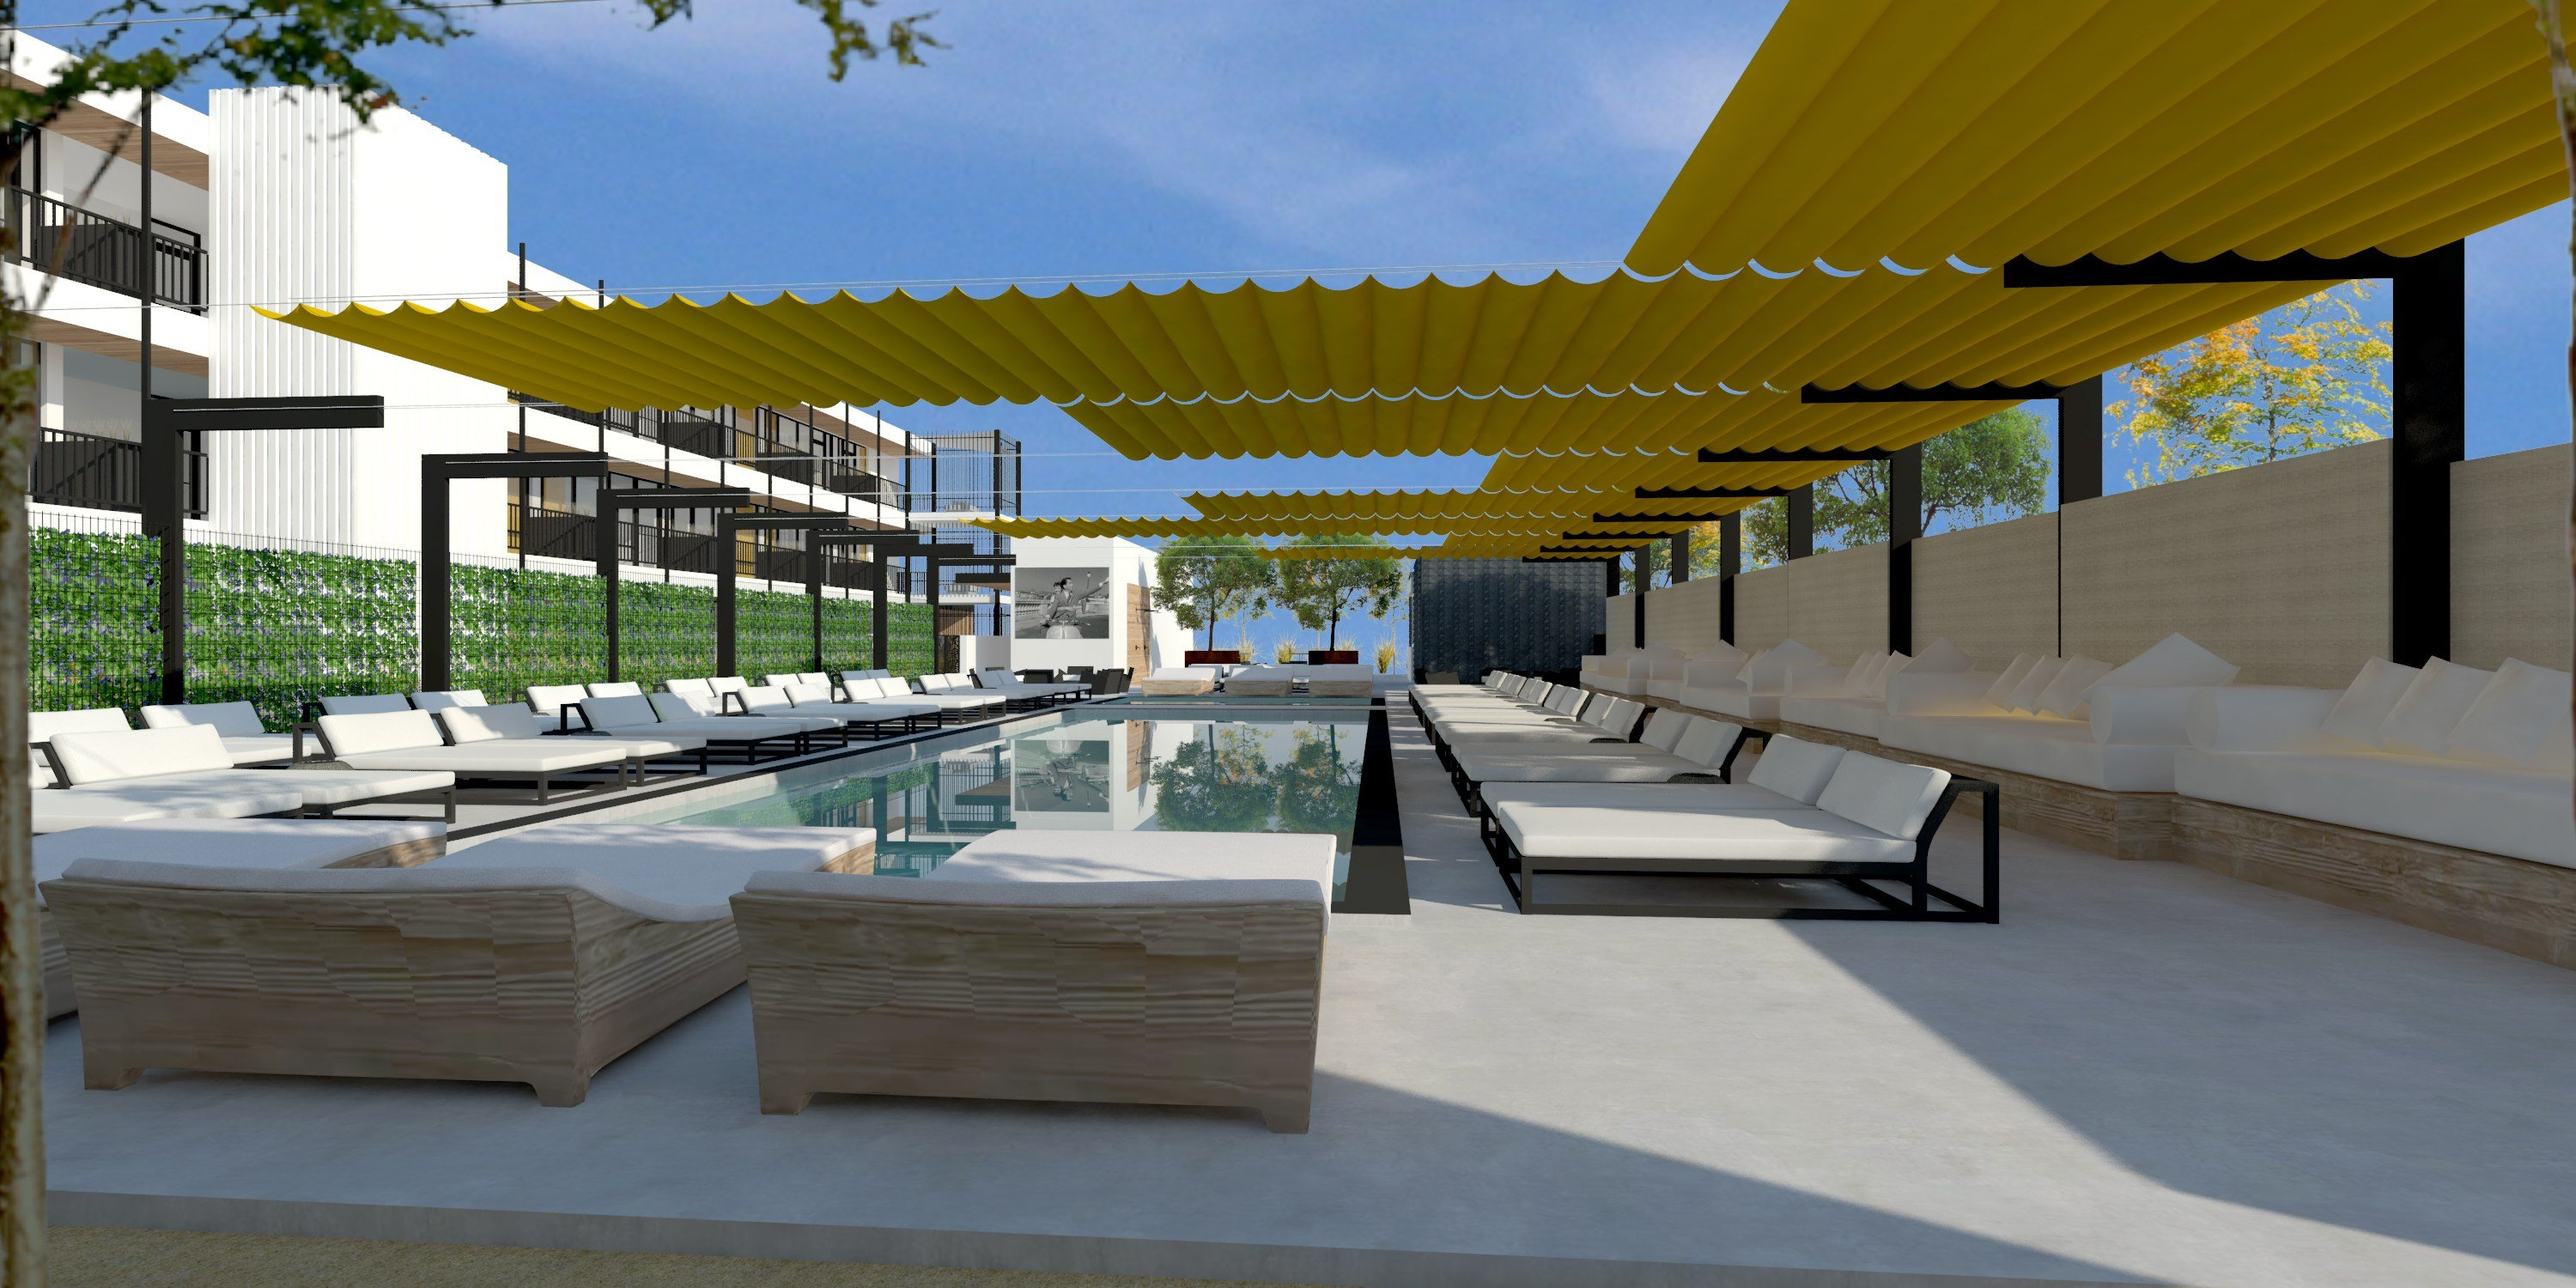 A rendering of the pool that will be incorporated with Arrive Phoenix. (Source: Vintage Partners)